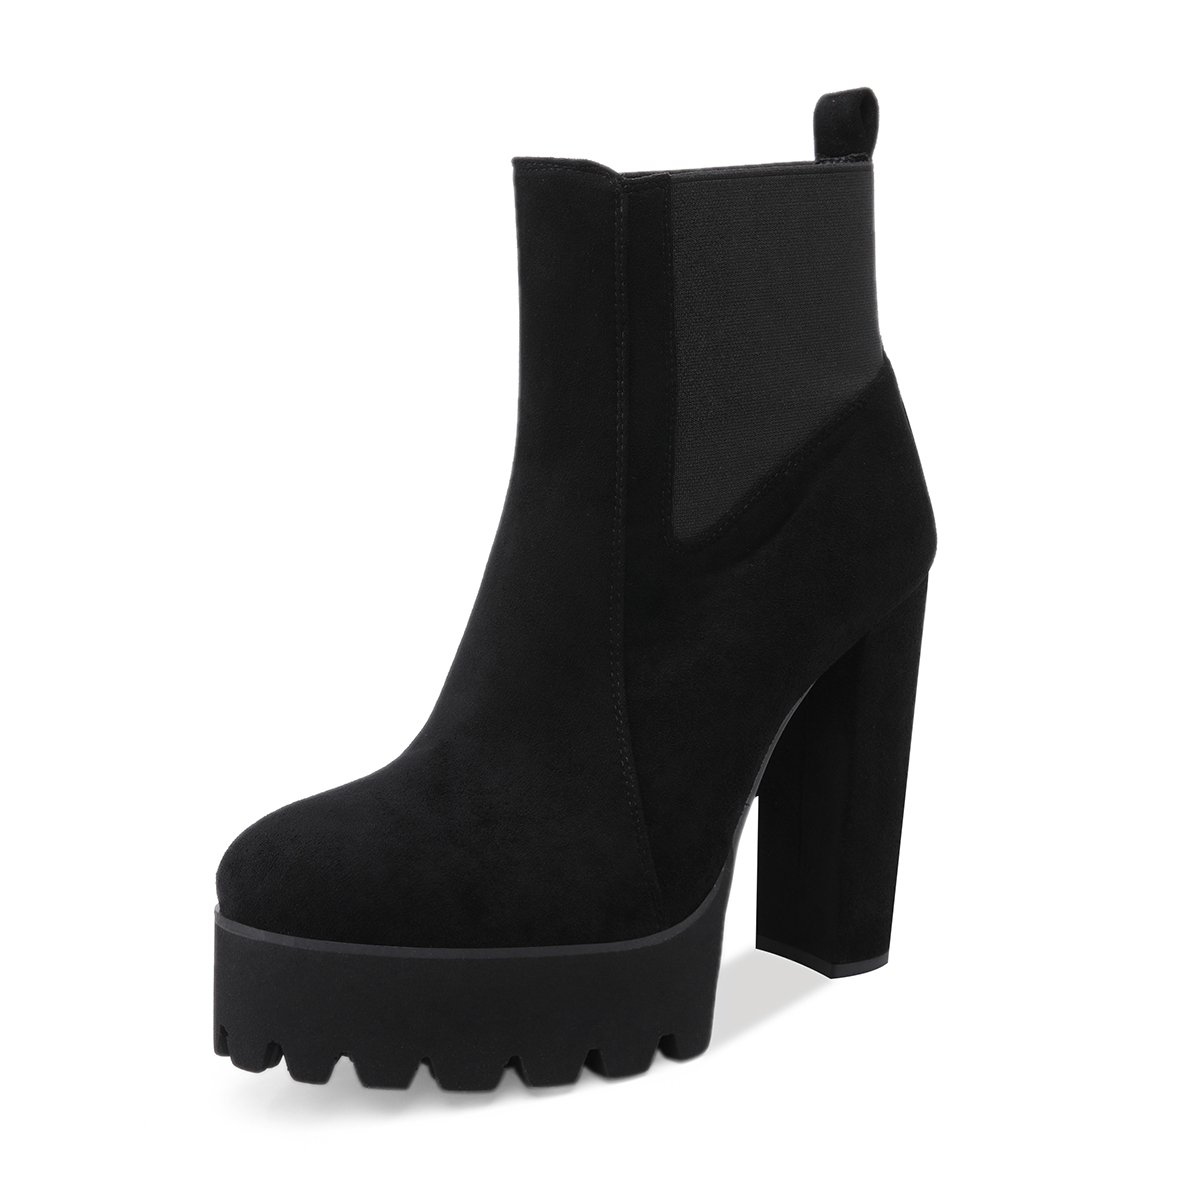 d8bbd1ad9 Amazon.com | Onlymaker Women's Comfy Elastic Platform Boots Round Toe Chunky  High Heel Pull on Ankle Booties | Ankle & Bootie